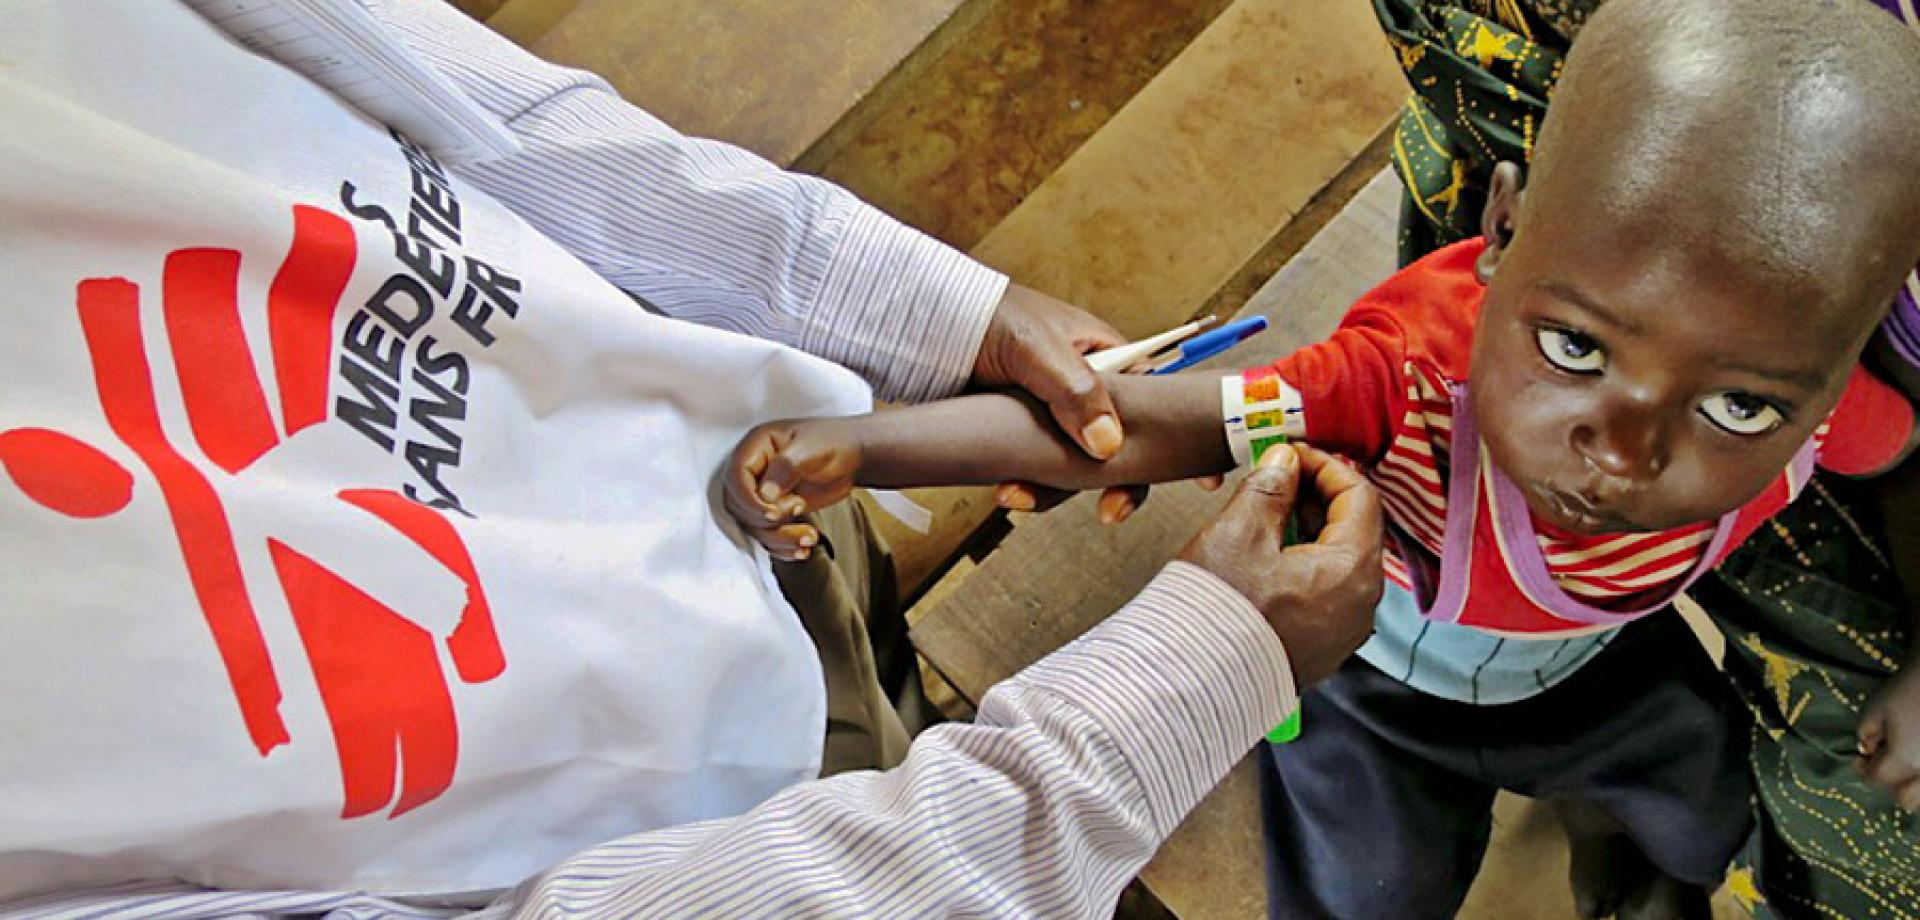 An MSF team member checks a child for malnutrition